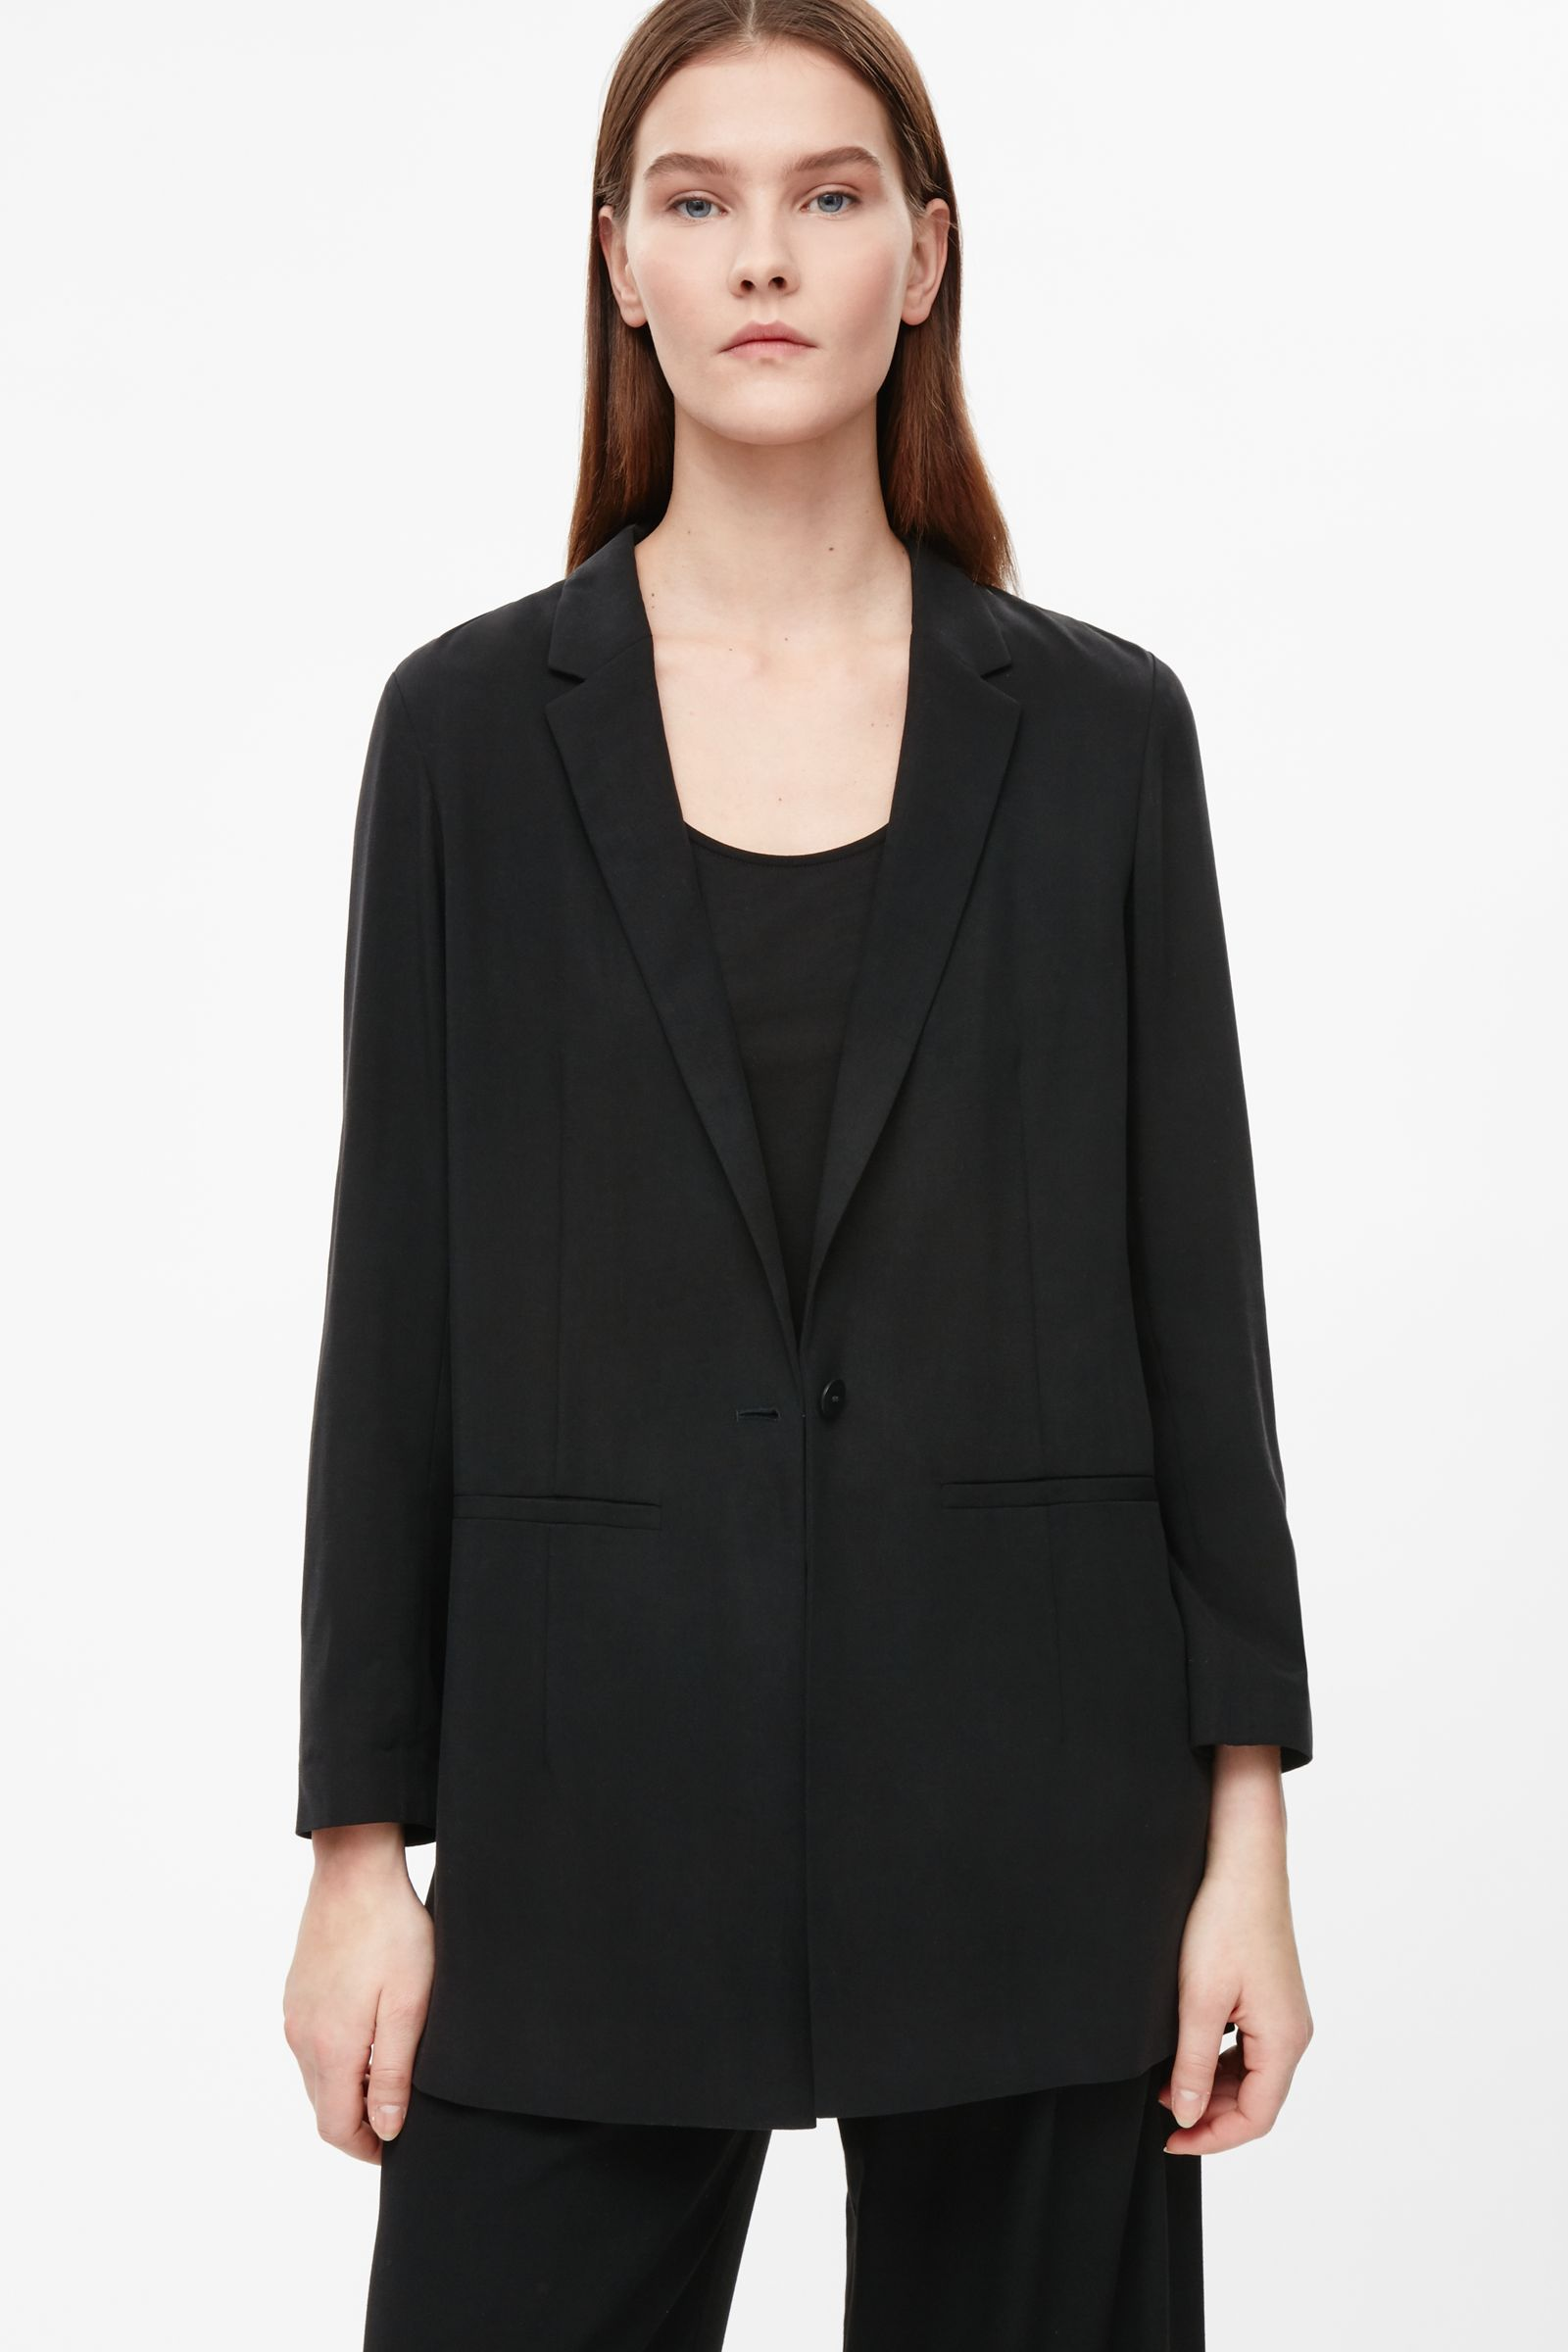 d6f975b81d29 20 Interview Outfit Staples That Will Help You Land Your Dream Gig